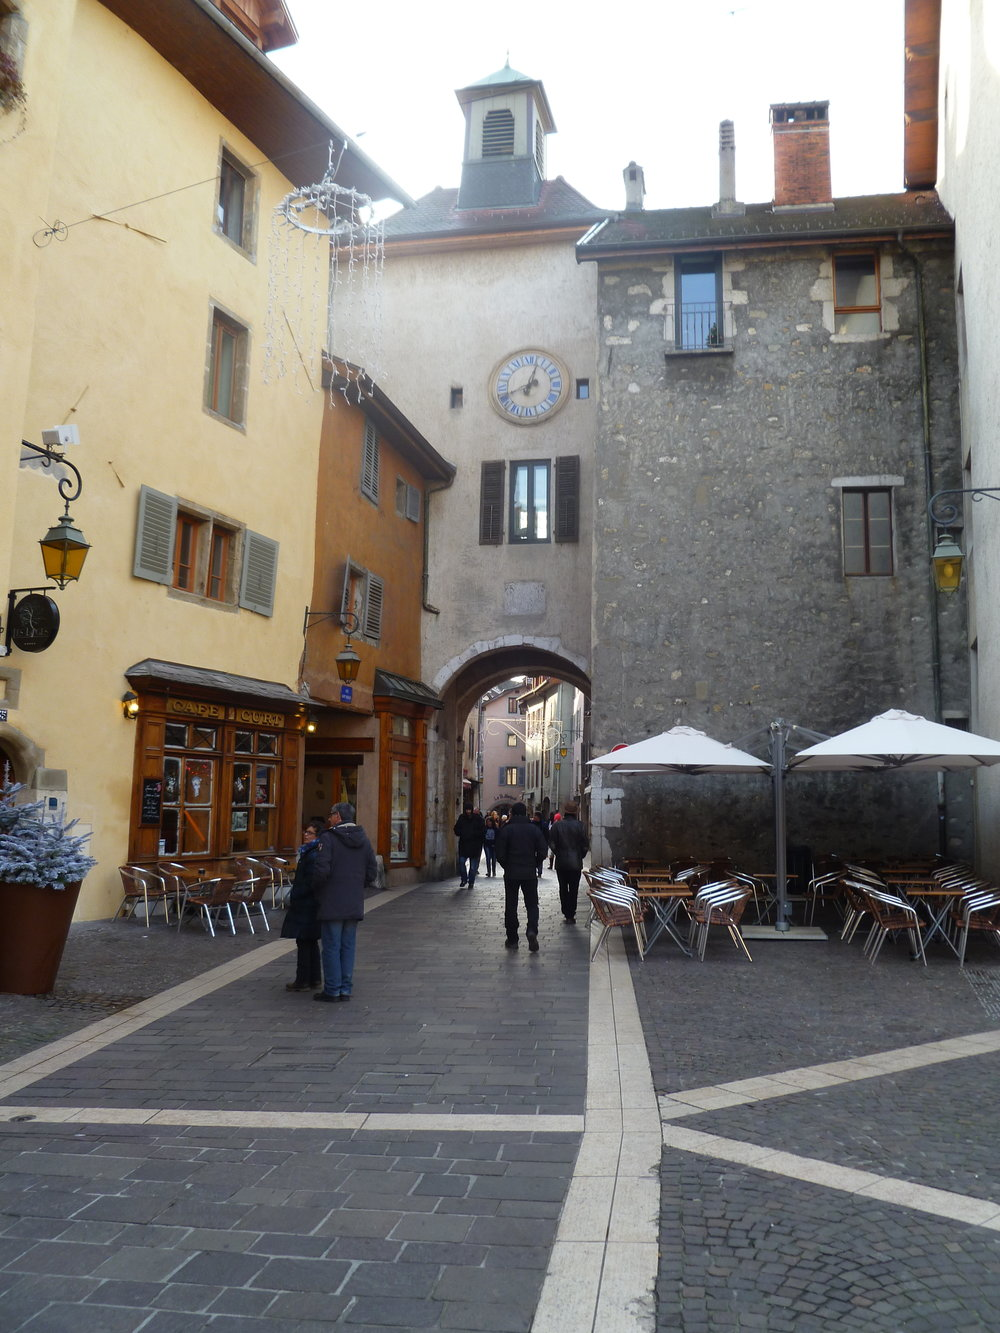 Another part of the old city with a clock tower.